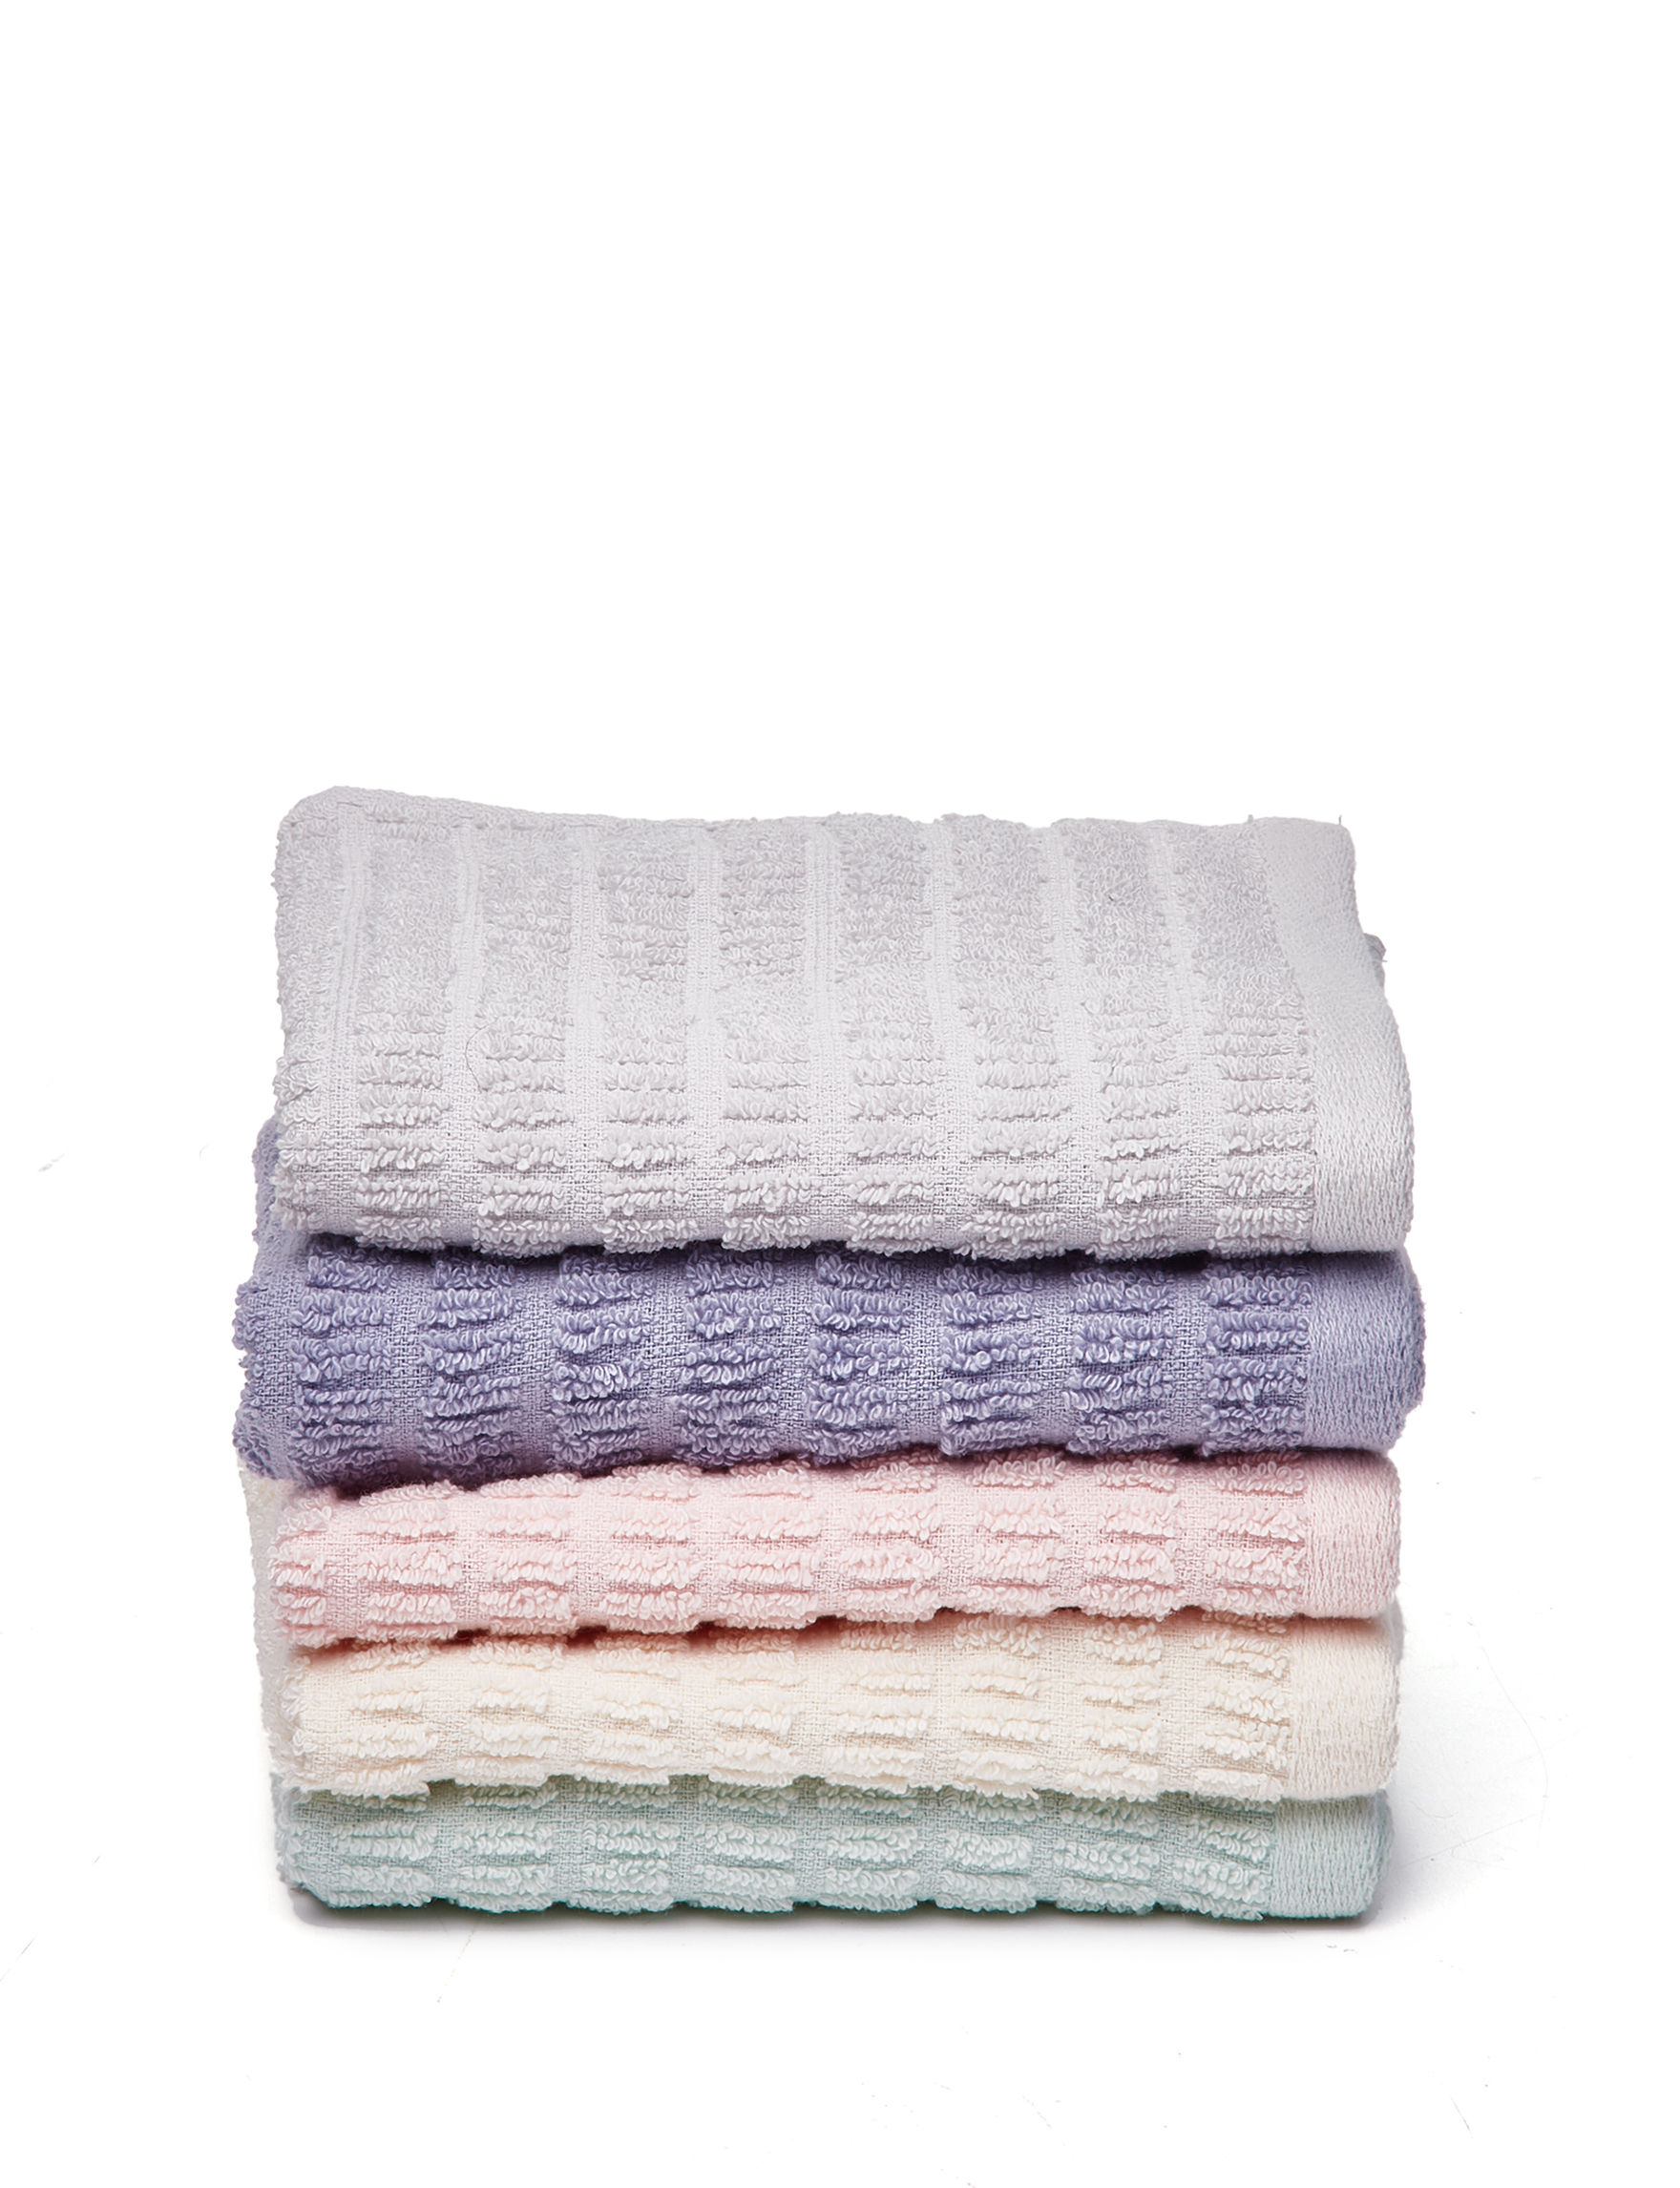 Great Hotels Collection Sea Foam Bath Towels Washcloths Towels